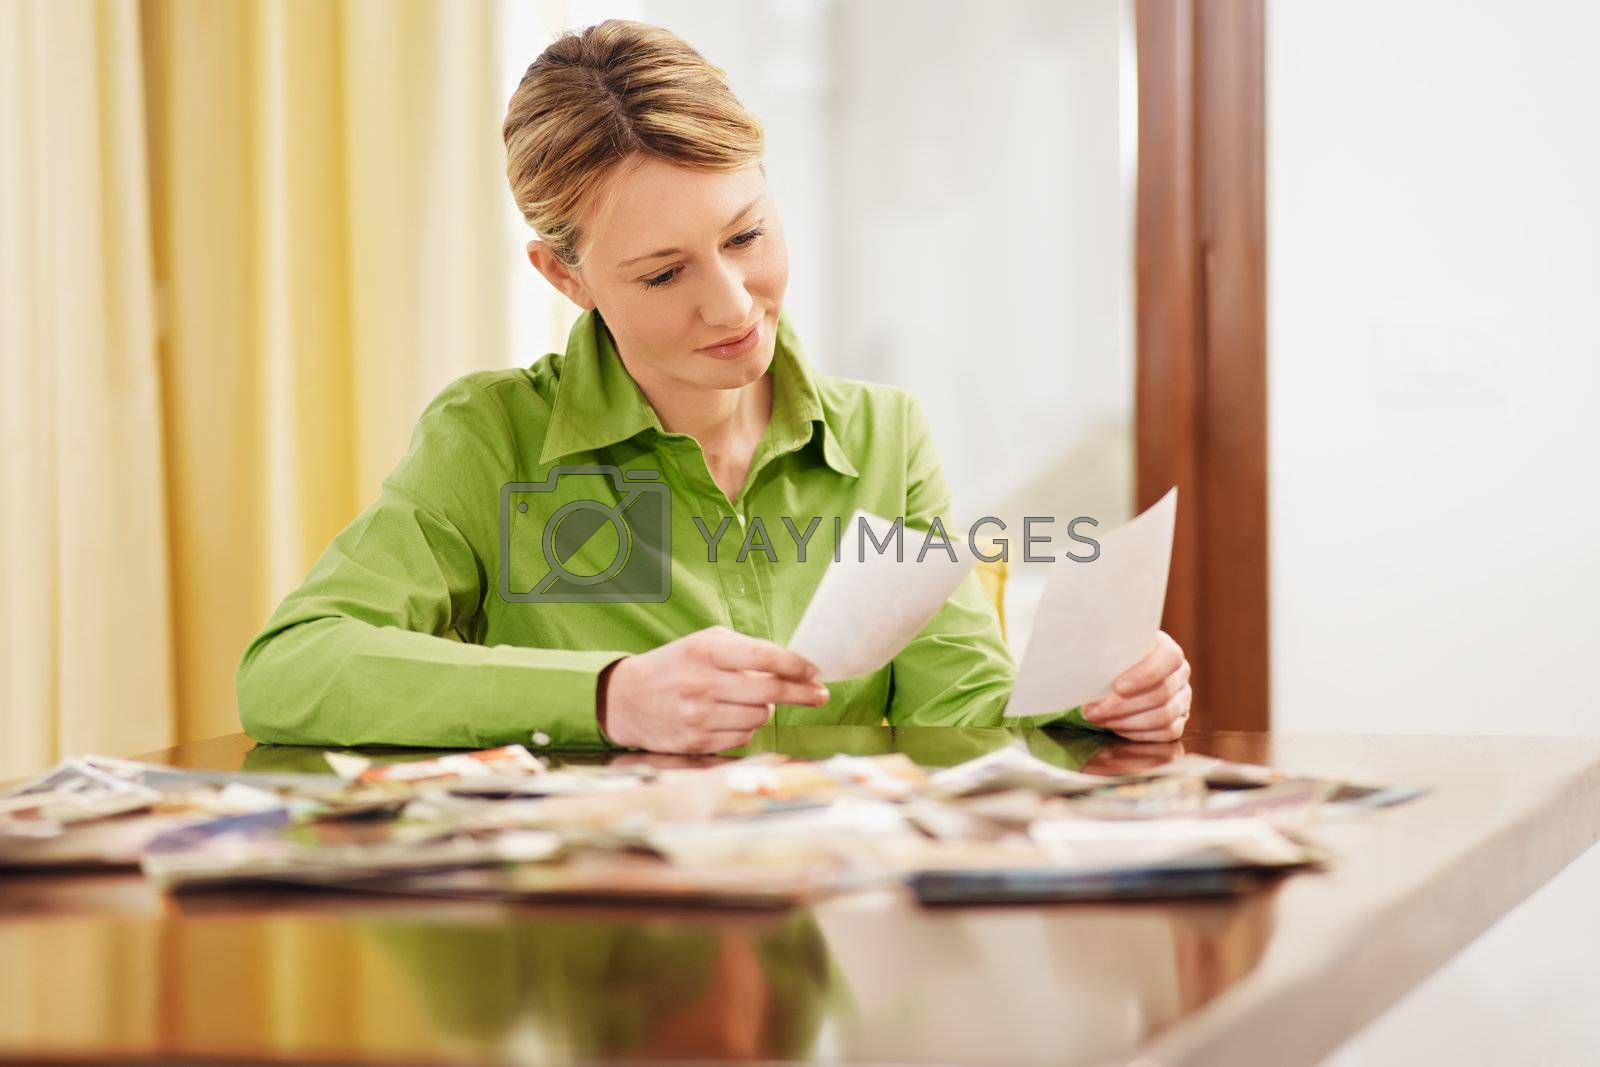 woman sitting and looking at pictures